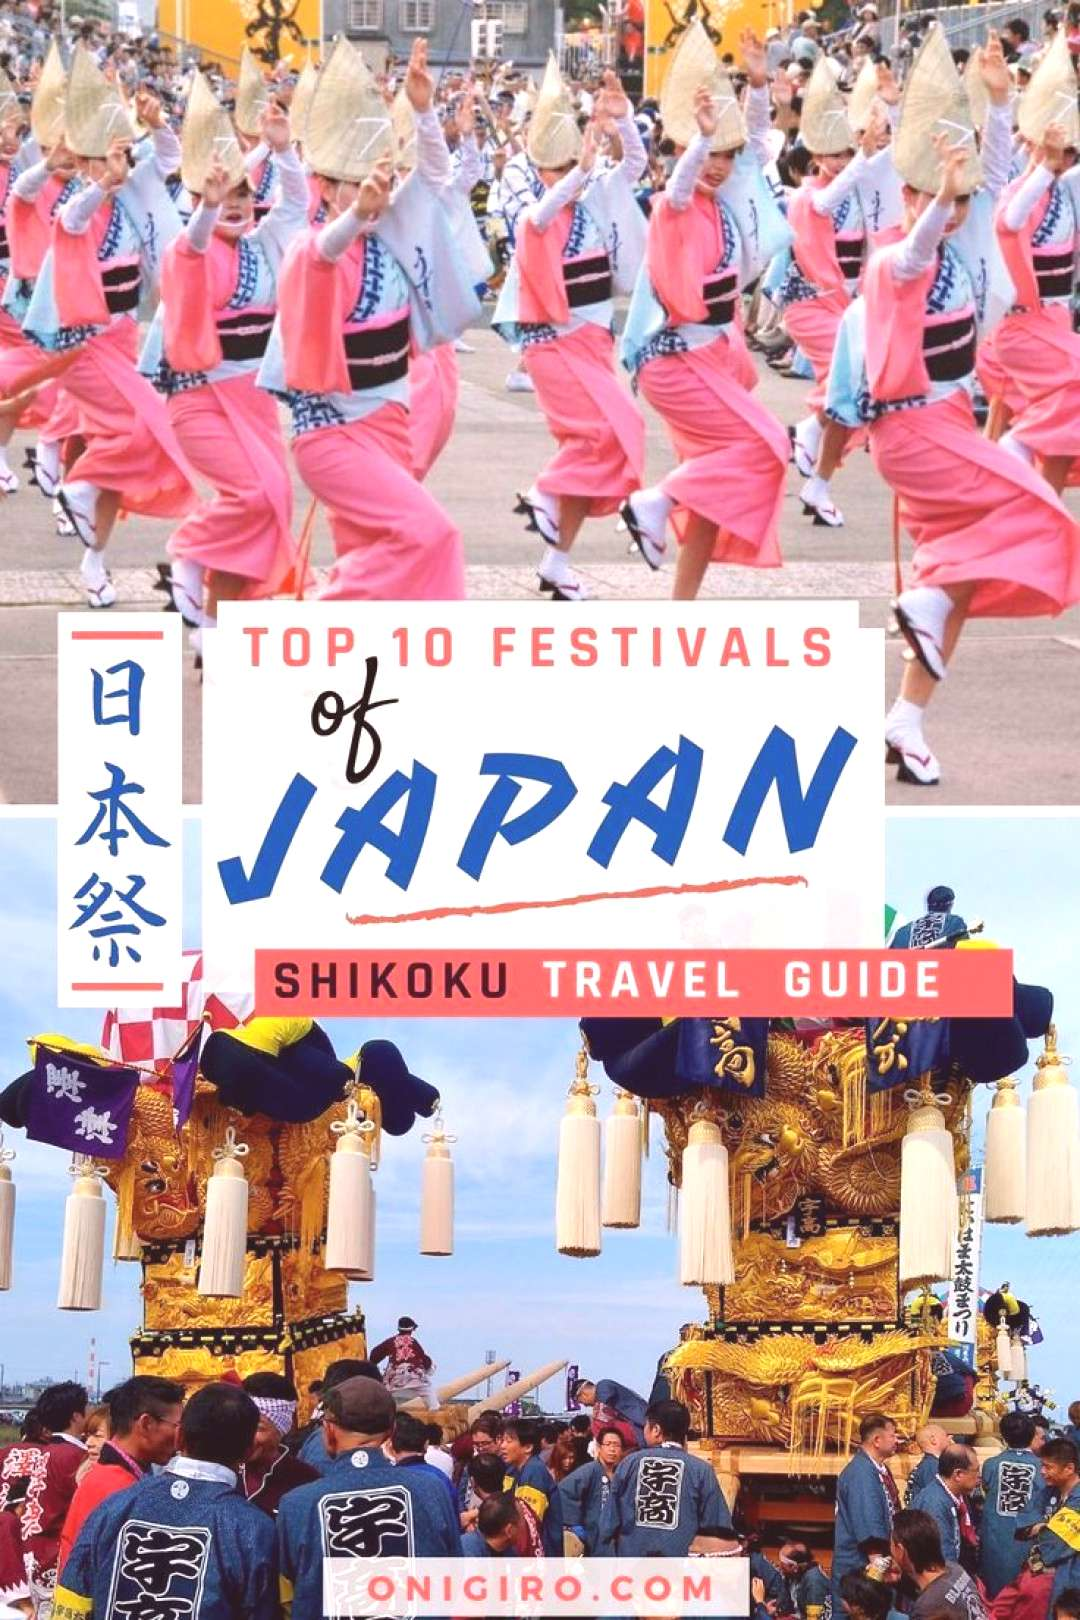 Top 10 Festivals in Japan | Shikoku Island Travel Guide amp August 5 Day Itinerary#august